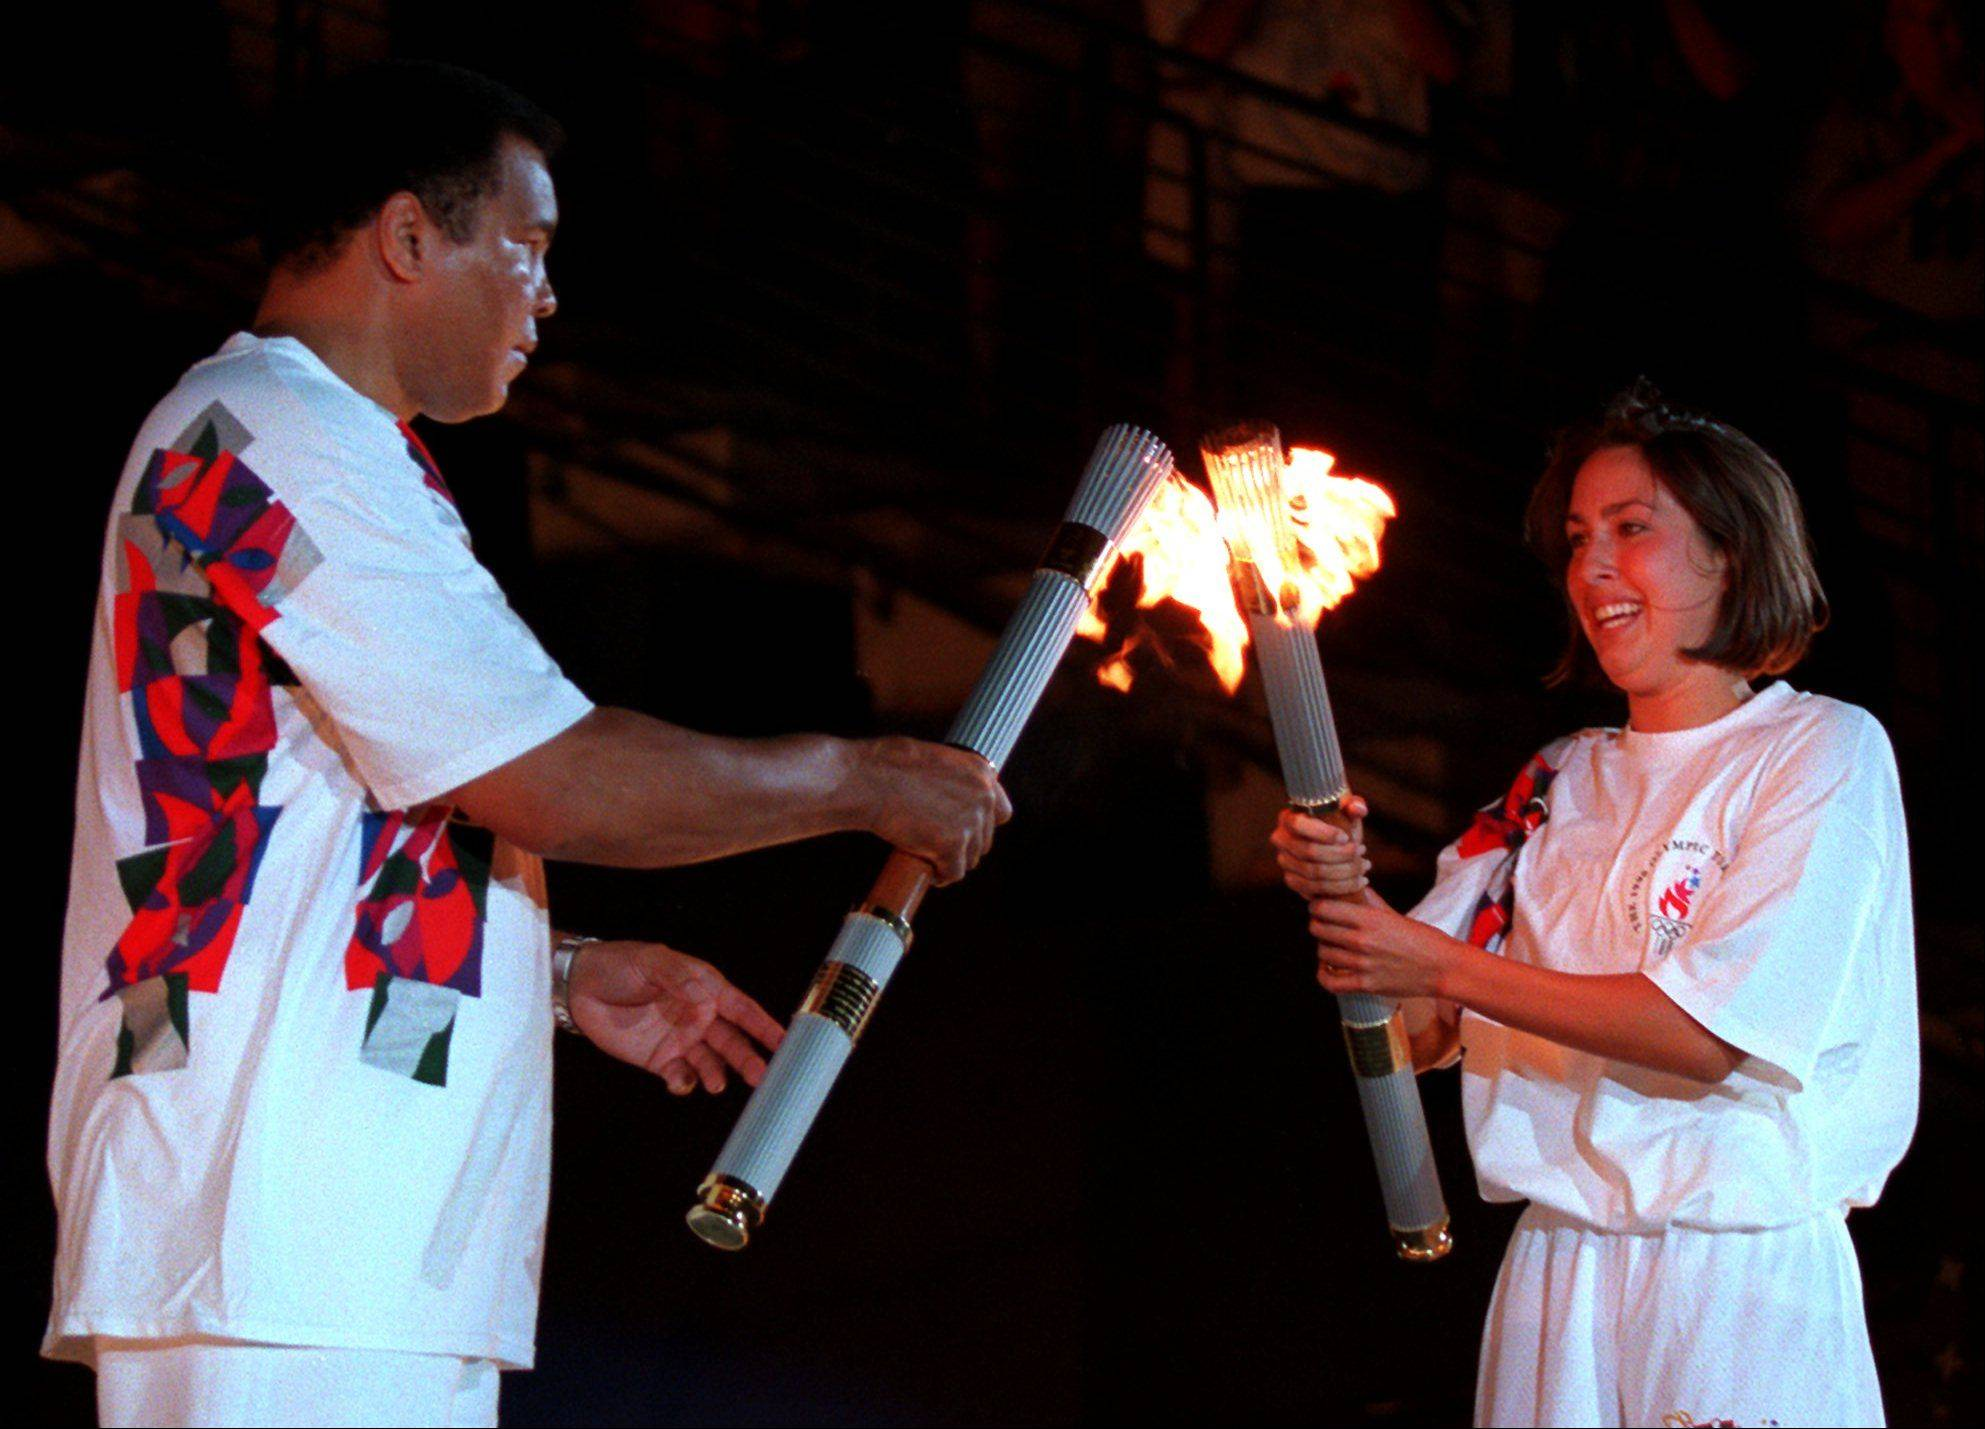 American swimmer Janet Evans passes the Olympic flame to Muhammad Ali during the 1996 Summer Olympic Games Opening Ceremony in Atlanta Friday, July 19, 1996.